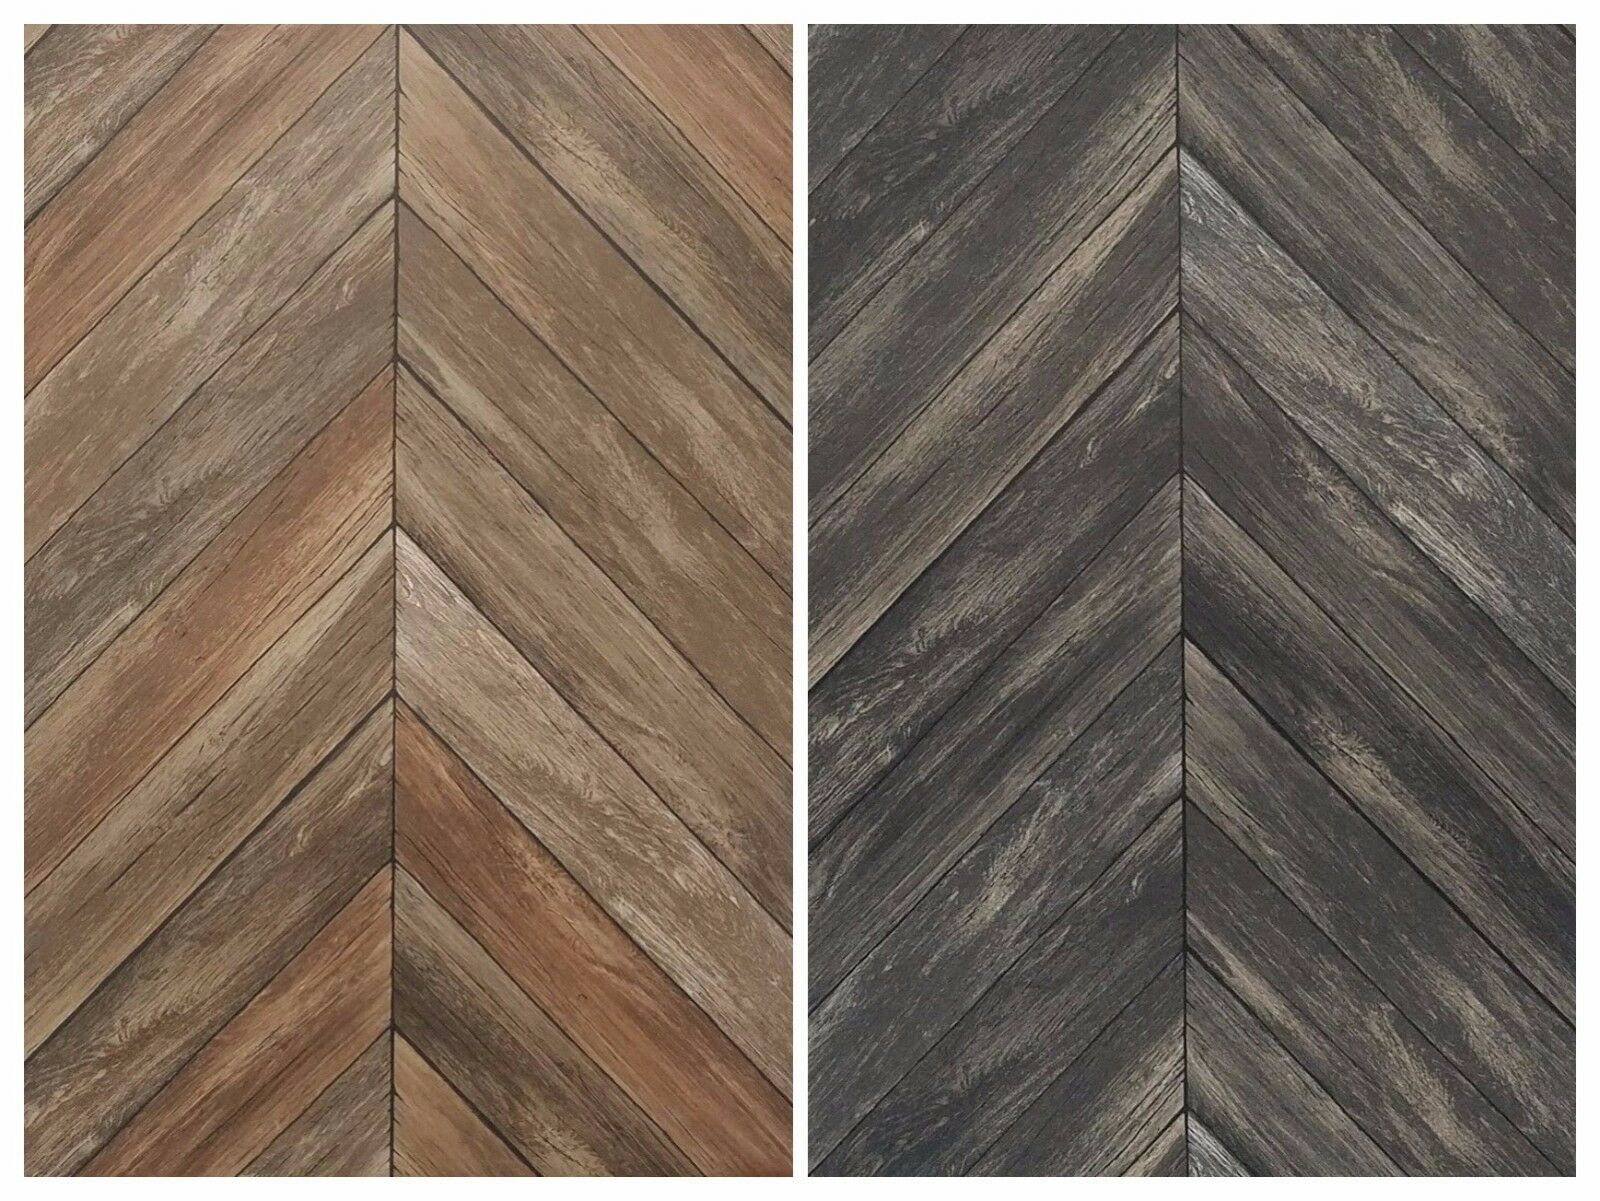 Details About Chevron Rustic Wood Plank Parisian Gray Brown Mid